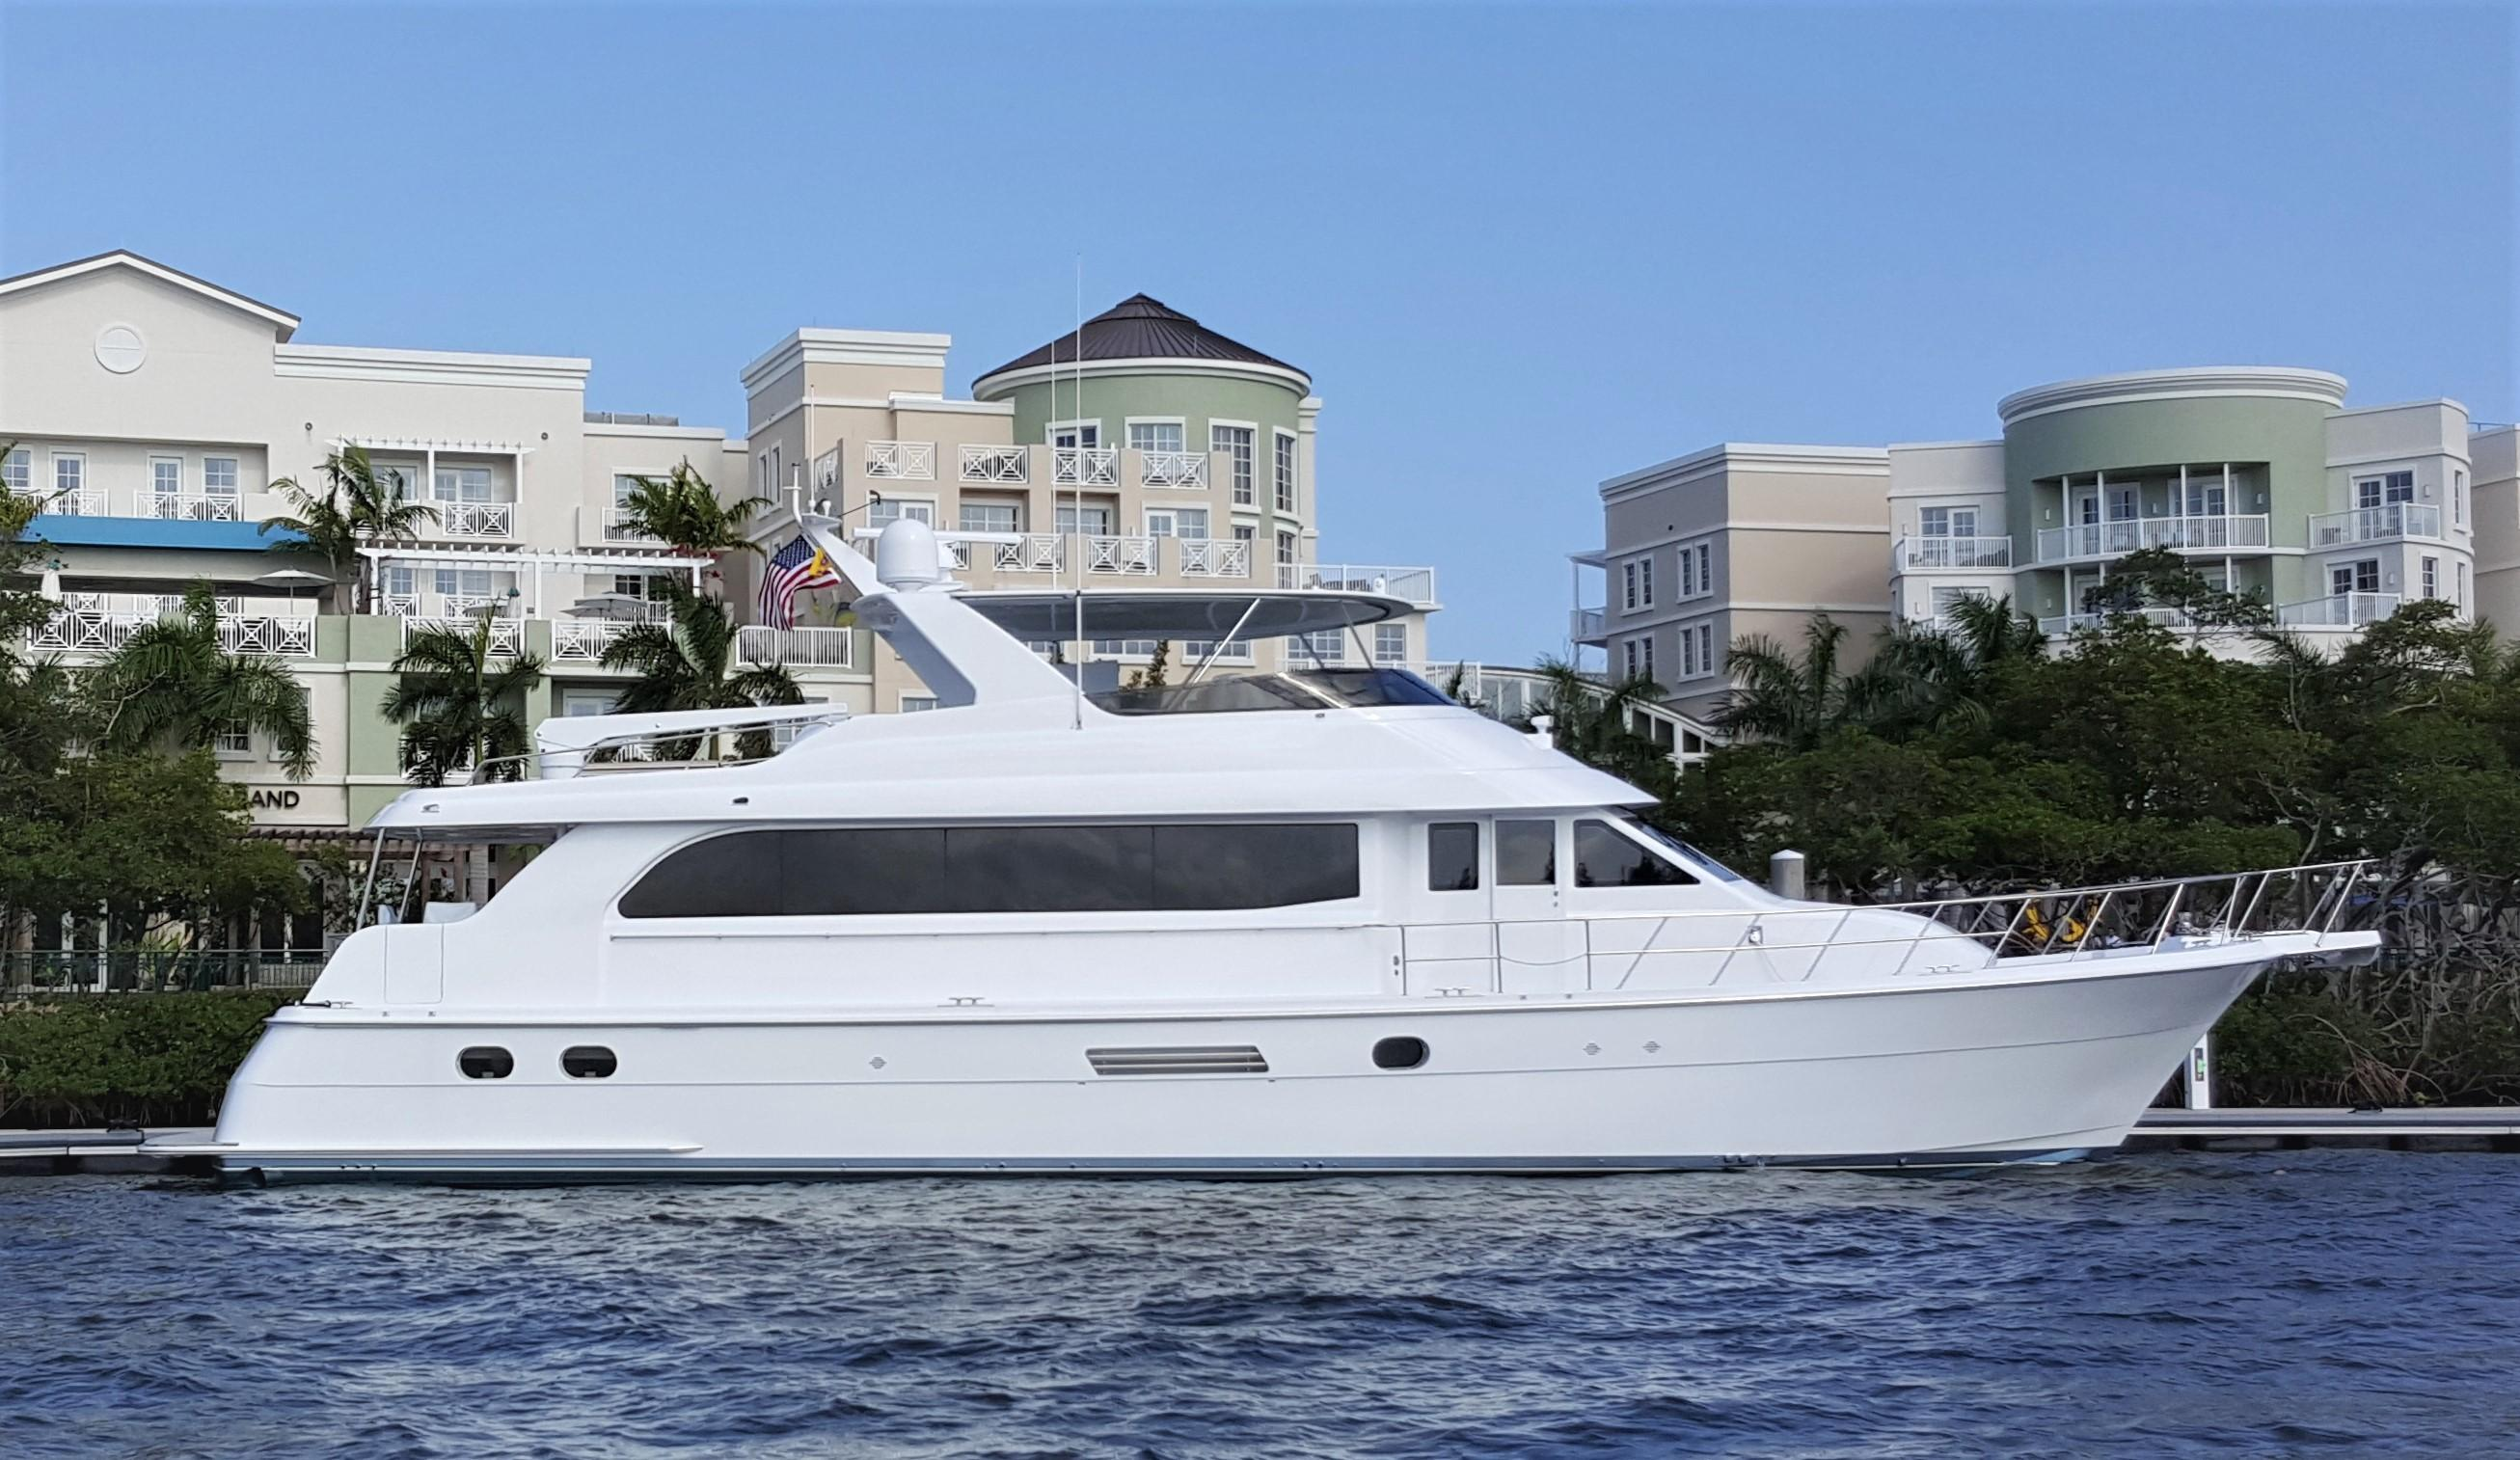 75 ft Hatteras Sport Deck